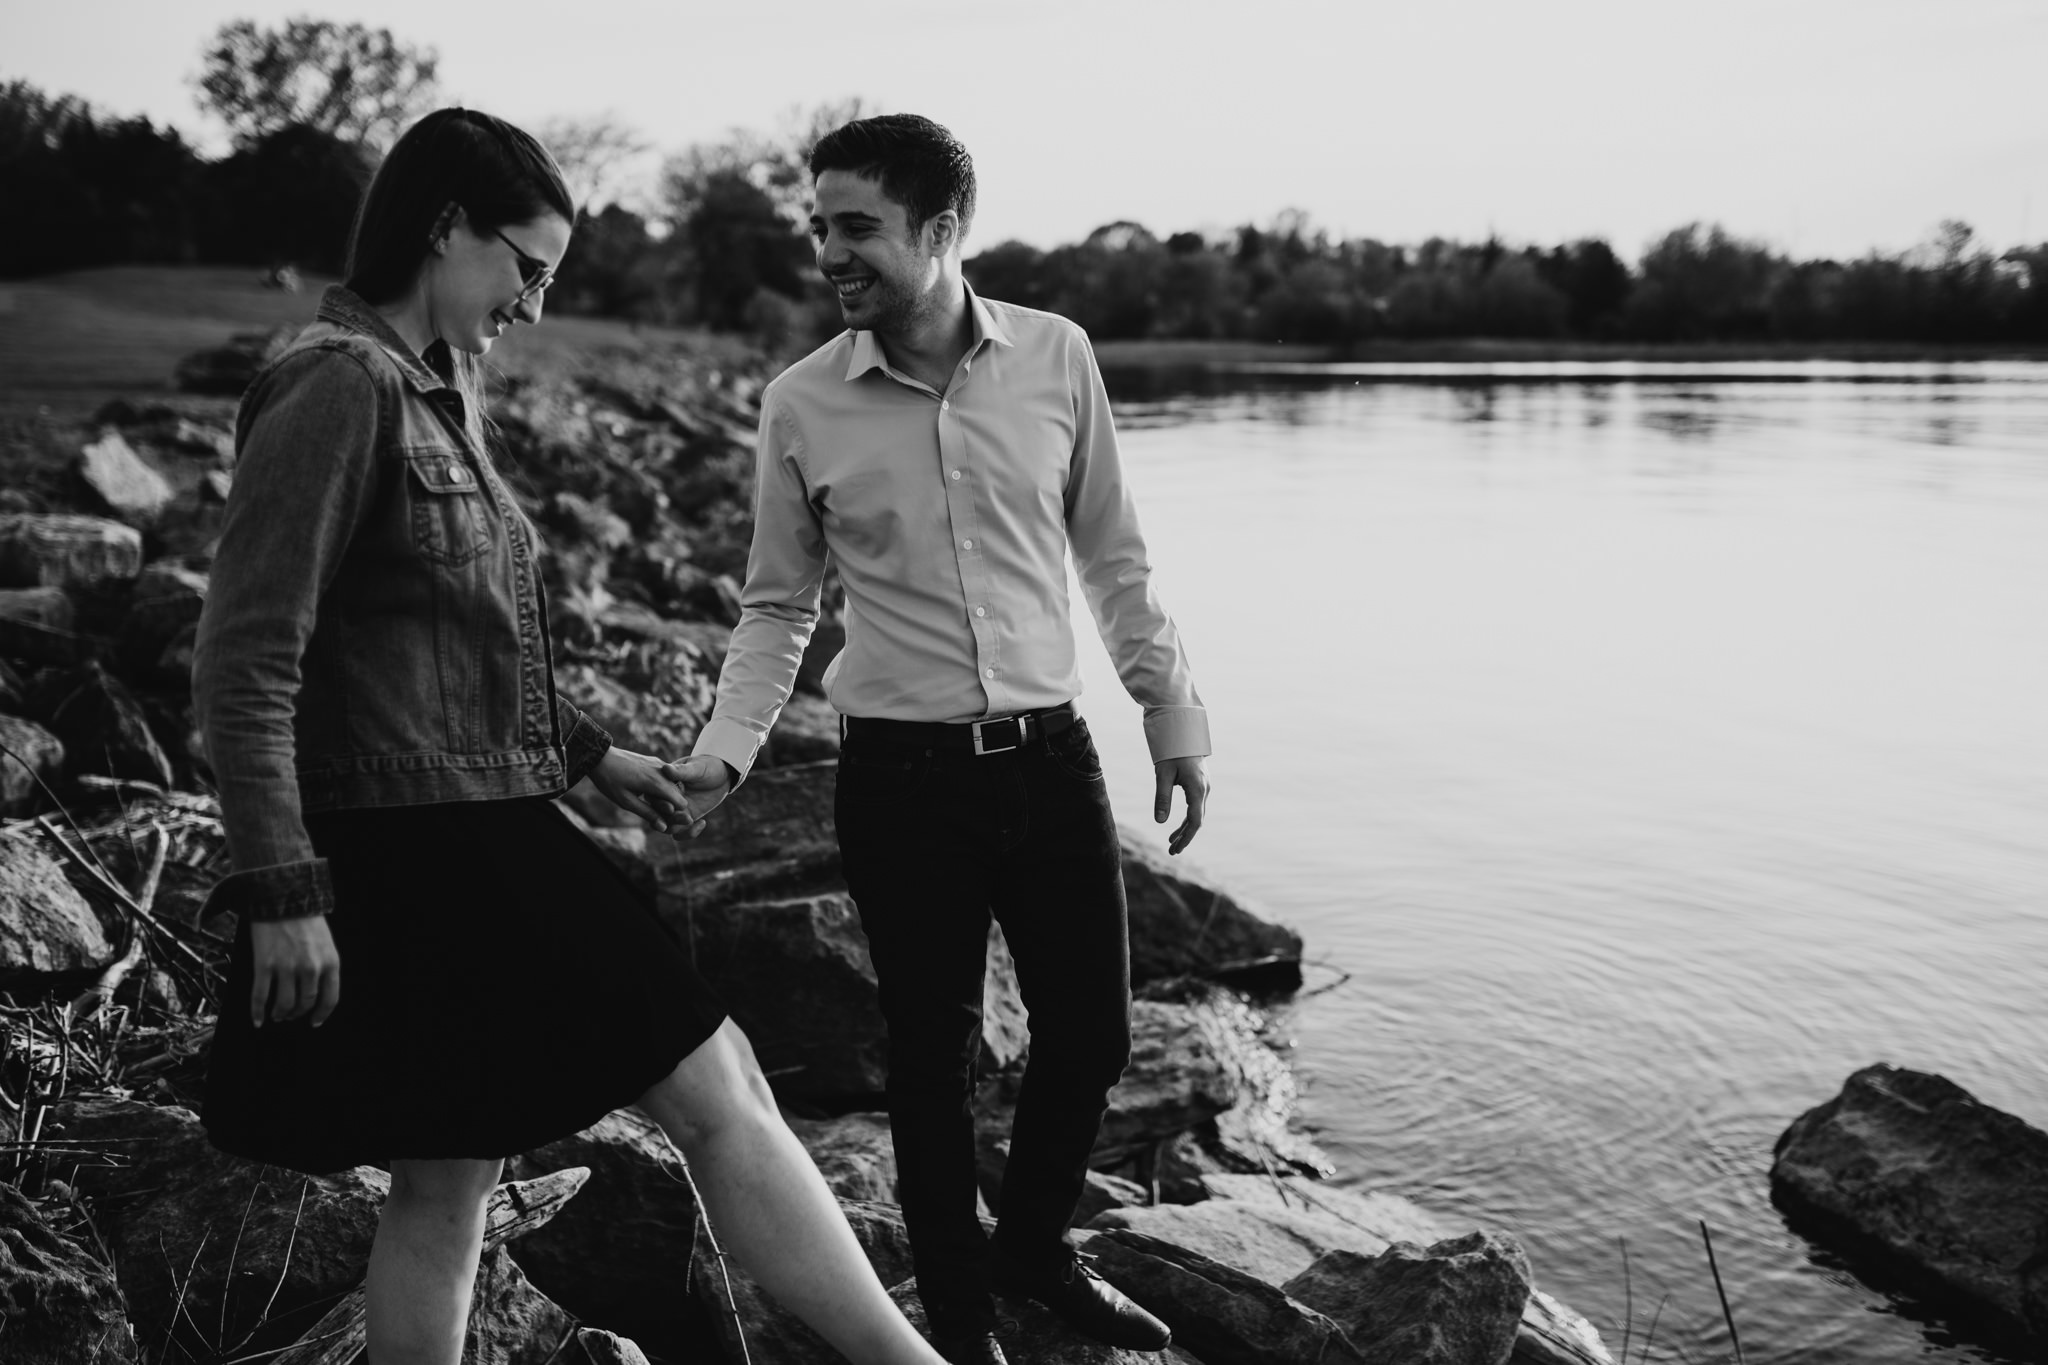 039-WEB-Jonathan-Kuhn-Photography-ElanaEden_Engagement_WEB-3770_mini.jpg